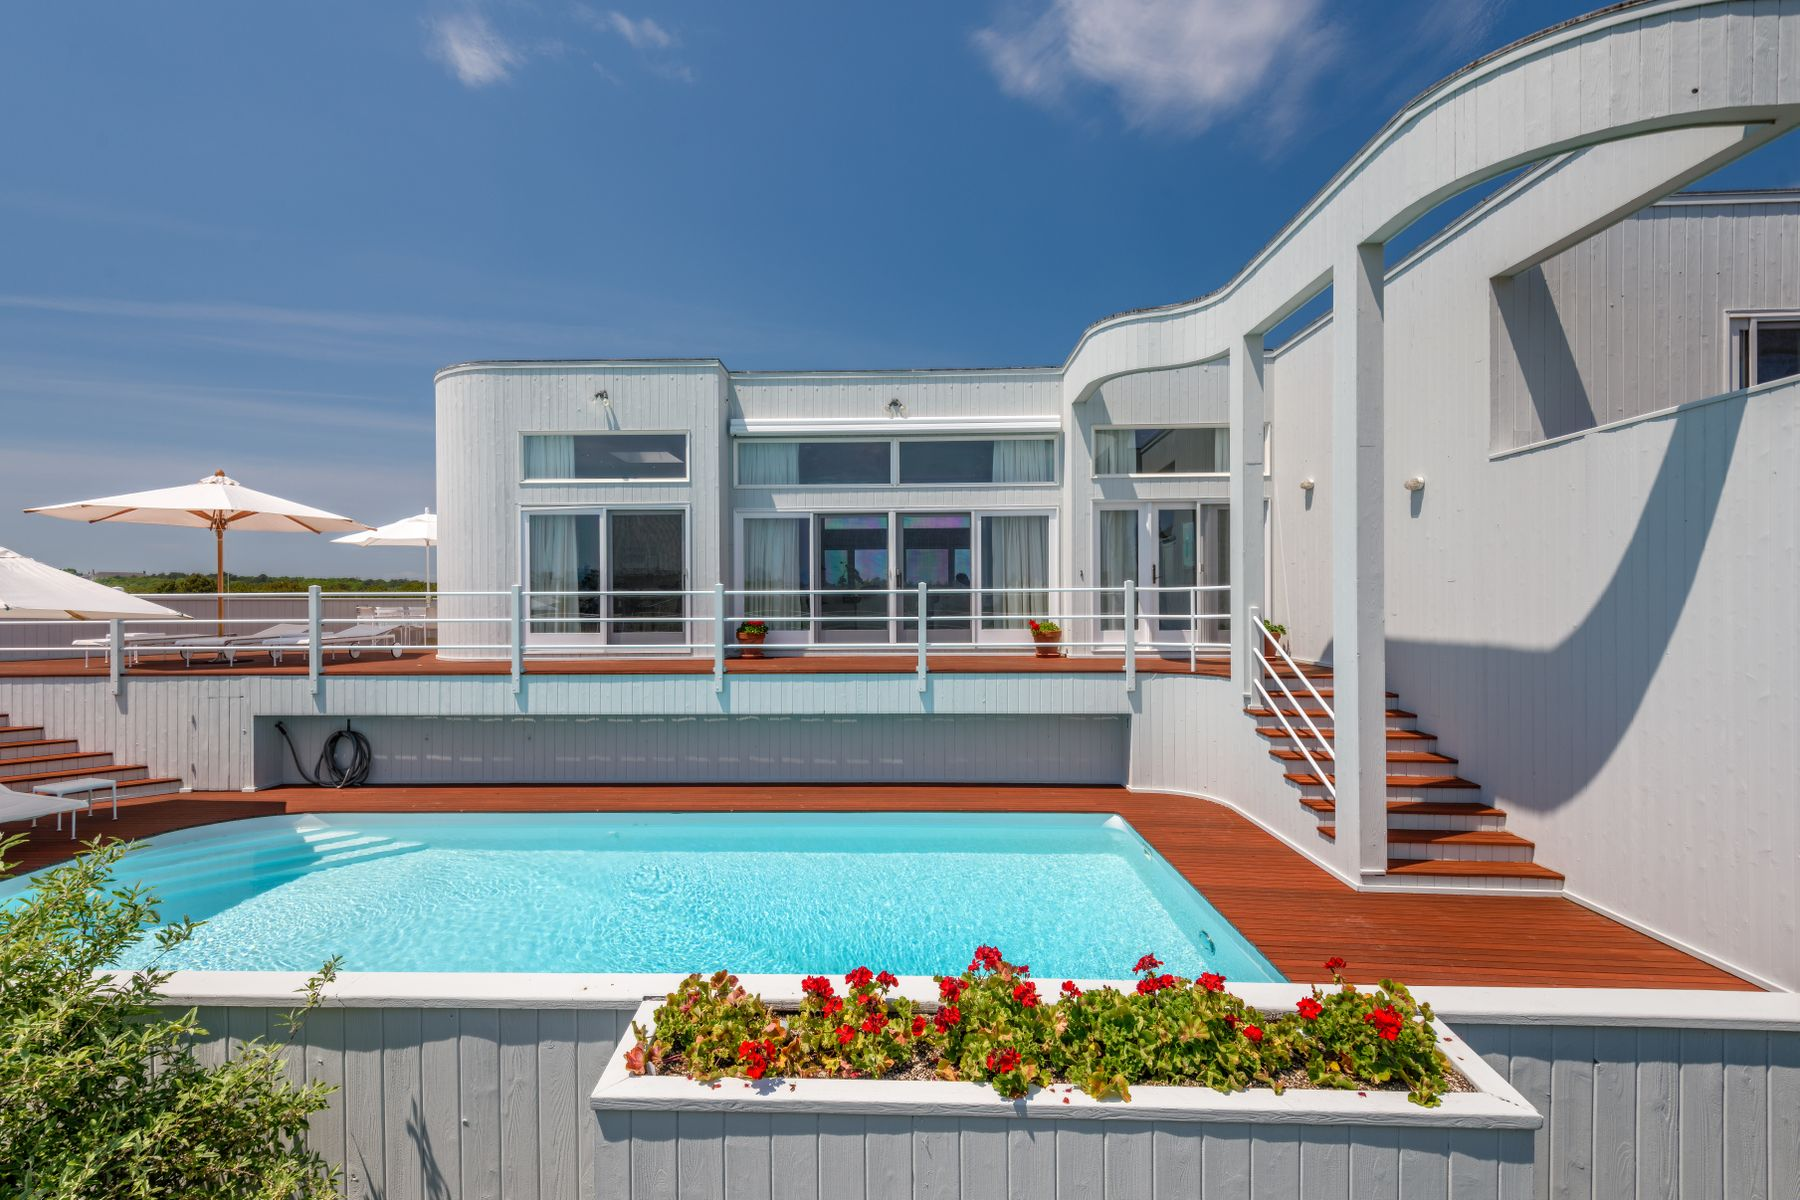 Single Family Homes for Active at Modern Beach House 20 Whalers Lane Amagansett, New York 11930 United States